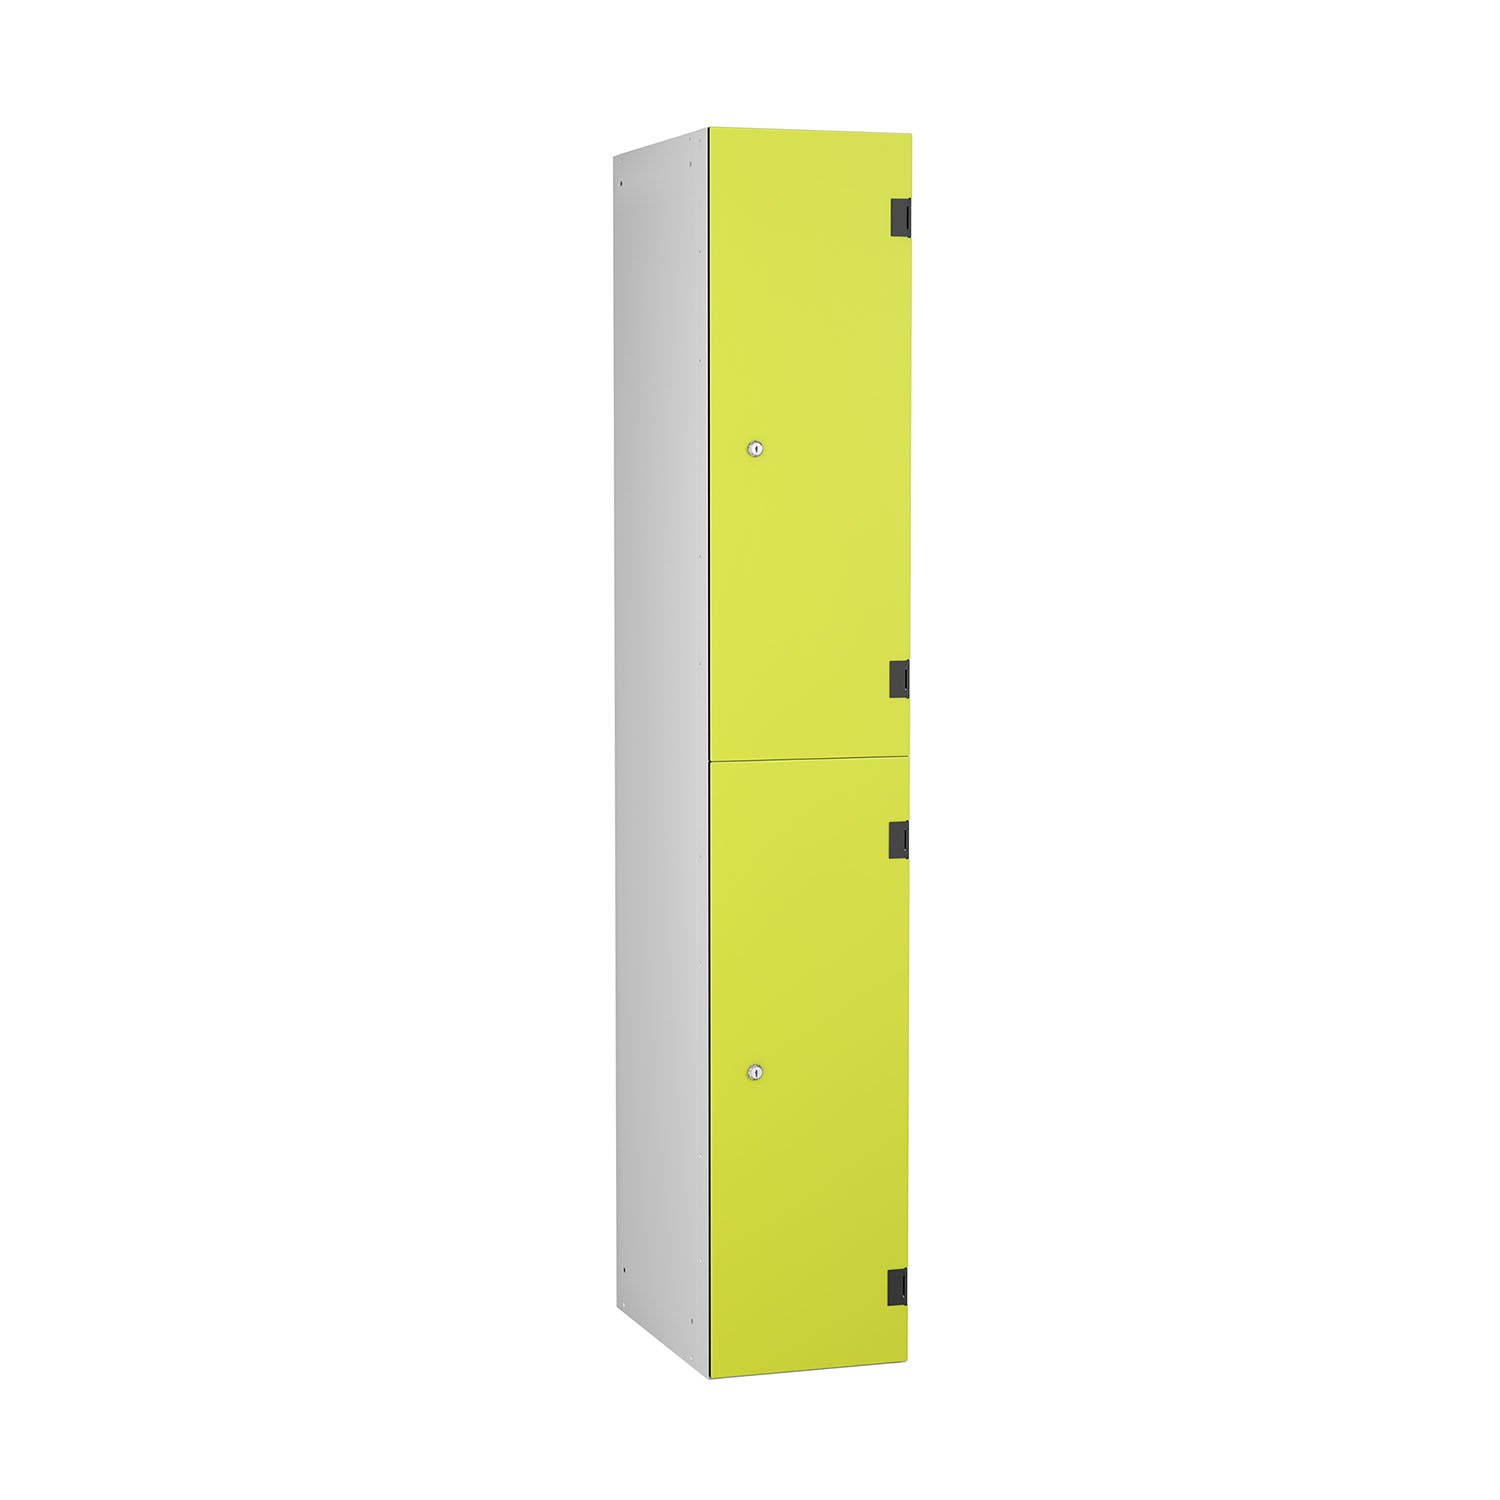 Probe shockproof 2 doors silver yellow